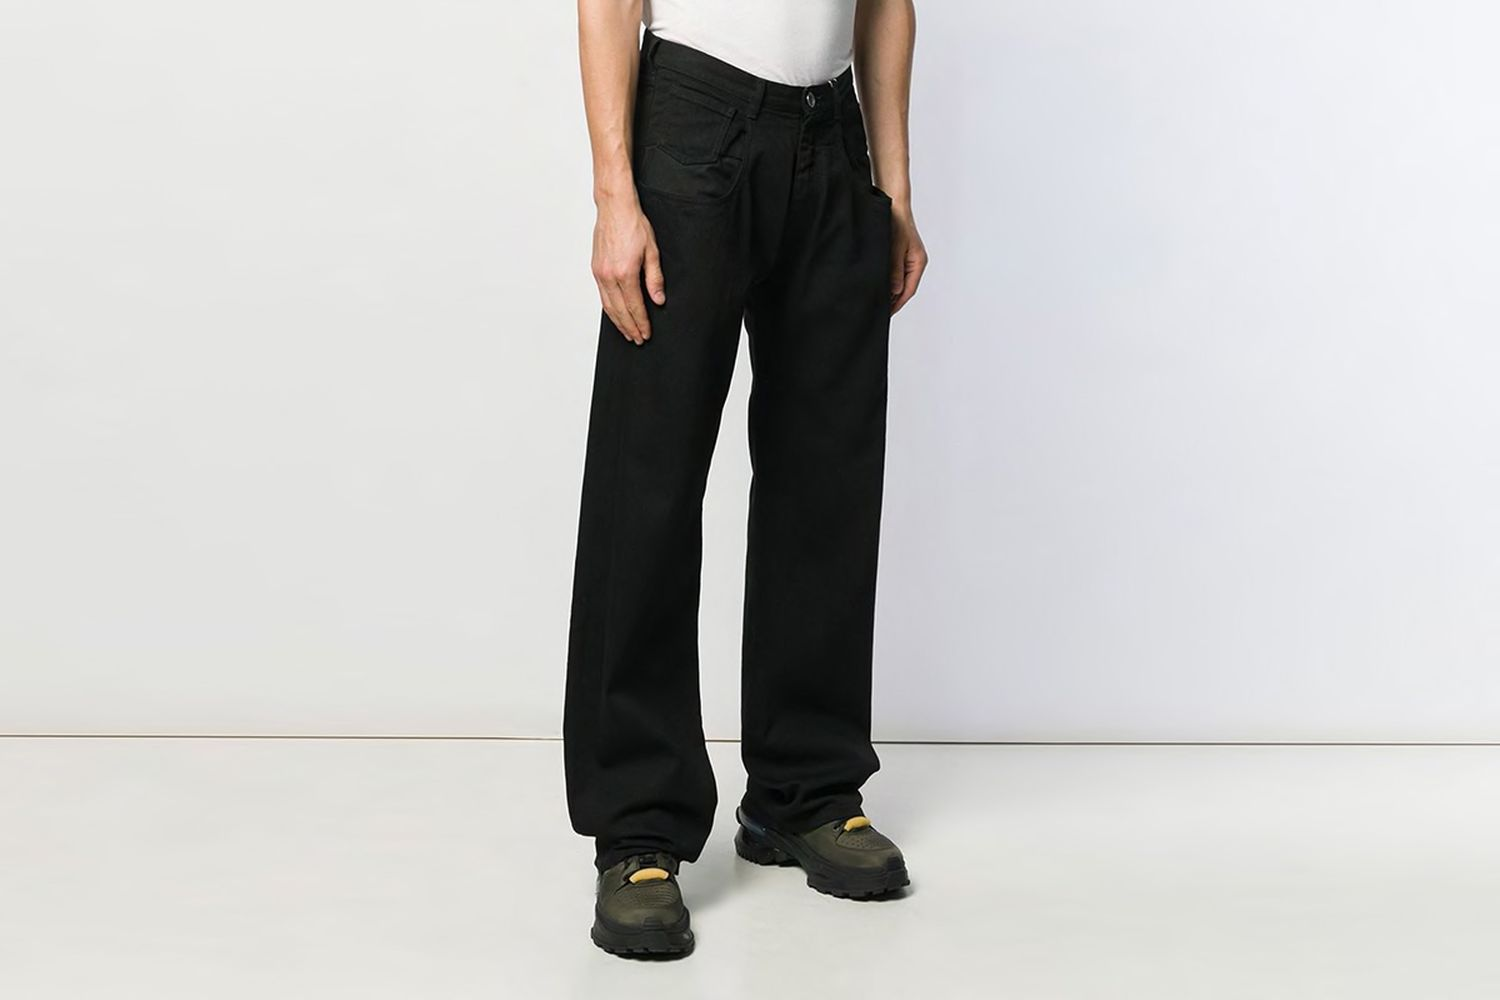 Chap Style Wide Jeans